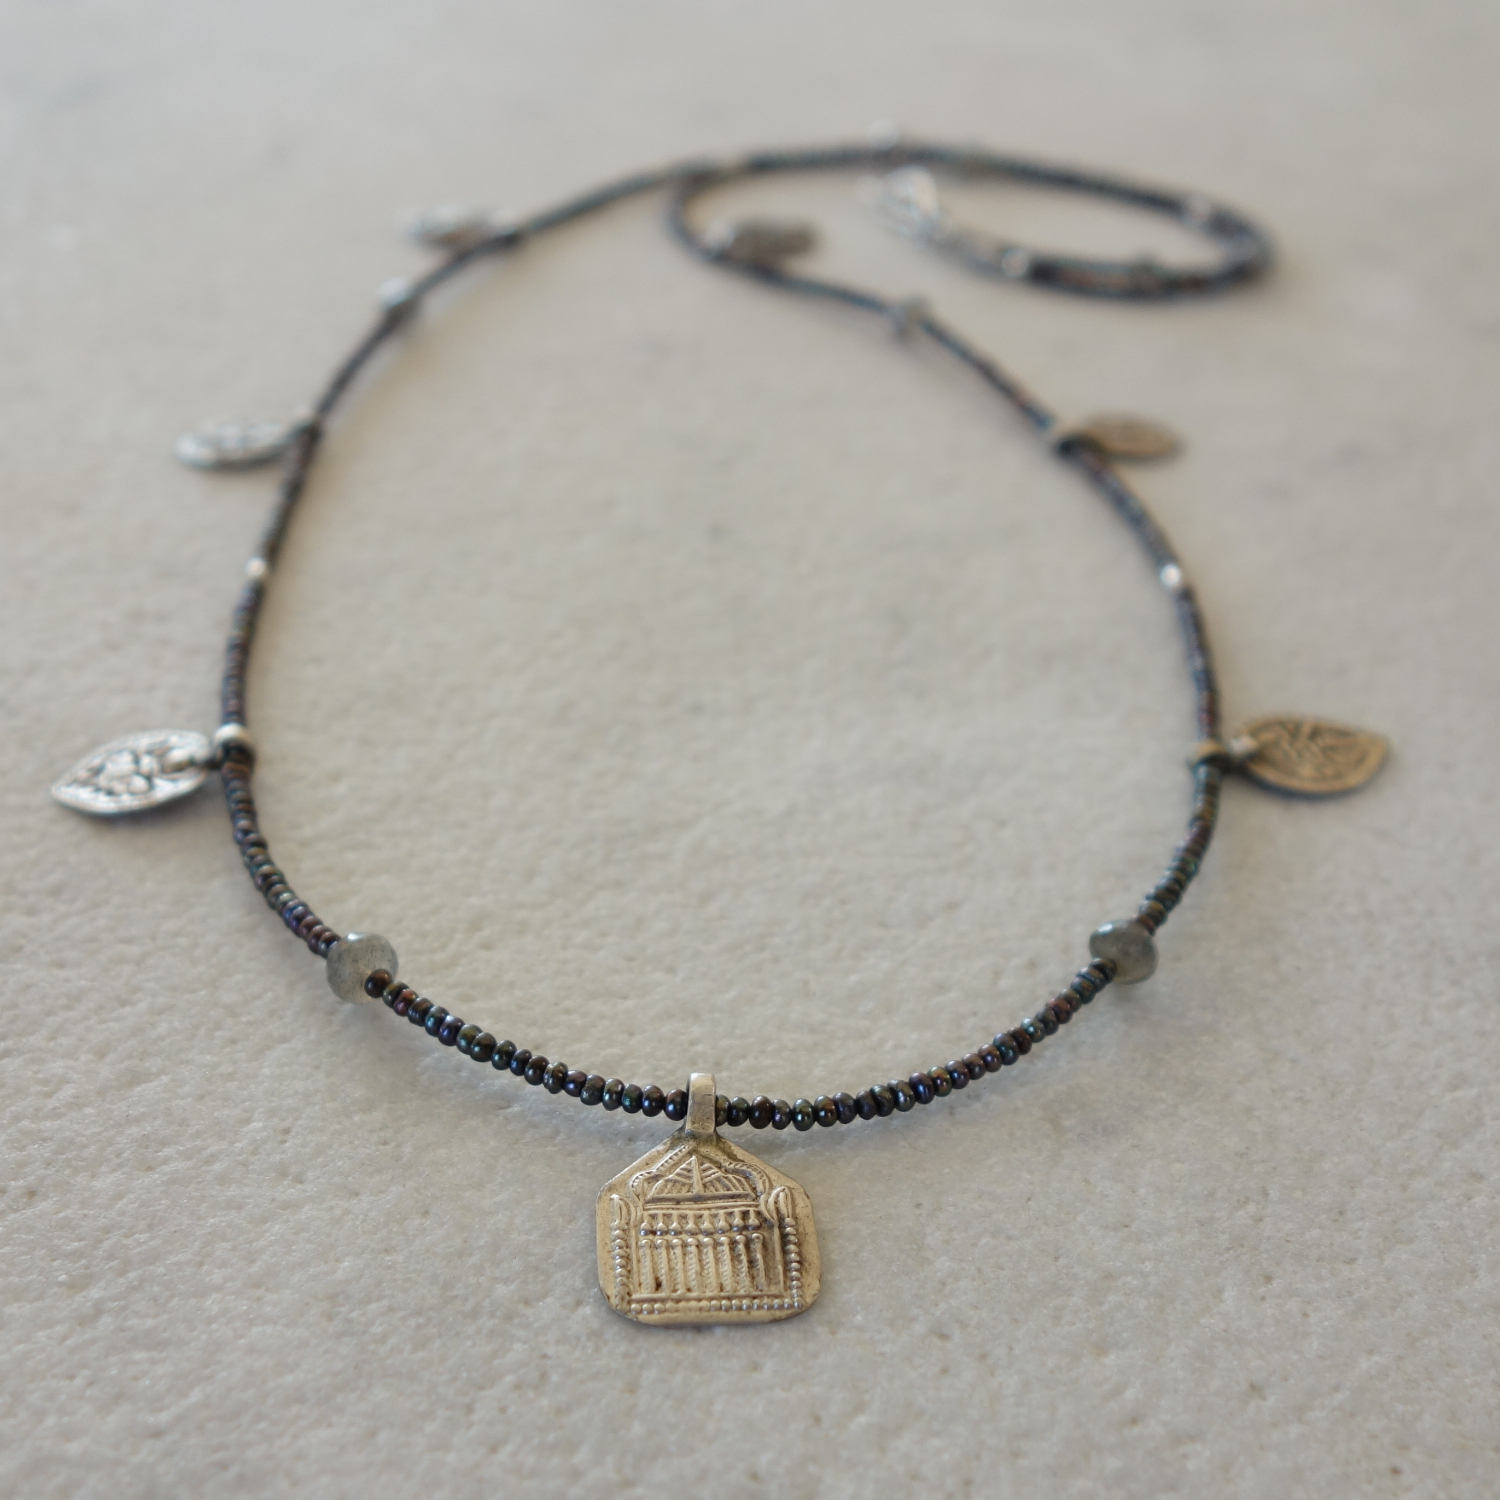 Old Indian Silver Coin Necklace